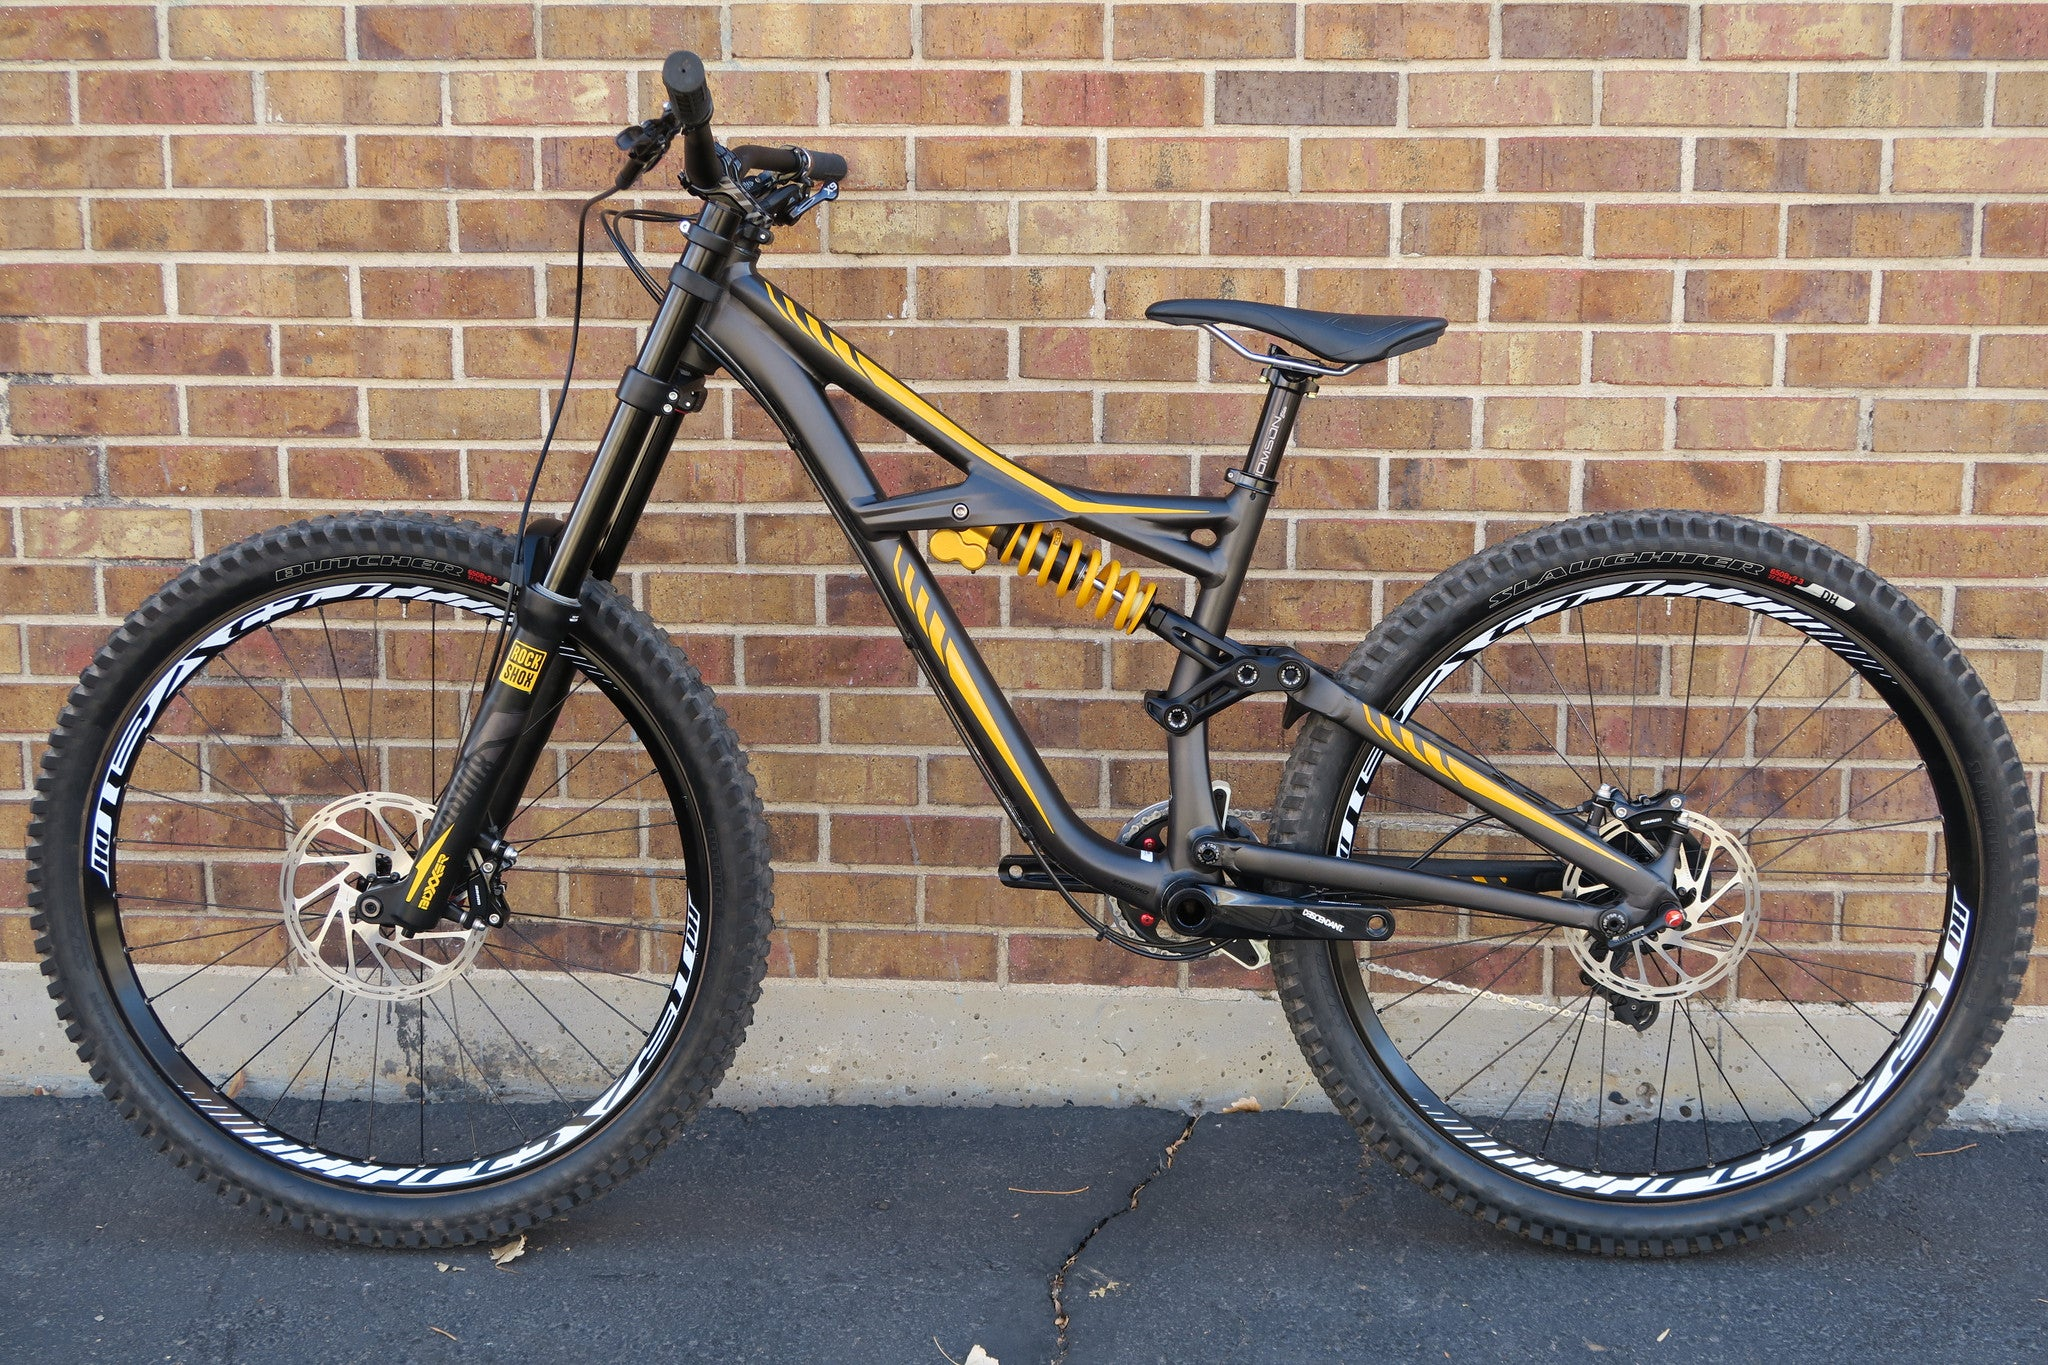 2015 SPECIALIZED ENDURO EXPERT EVO 650B 27.5""